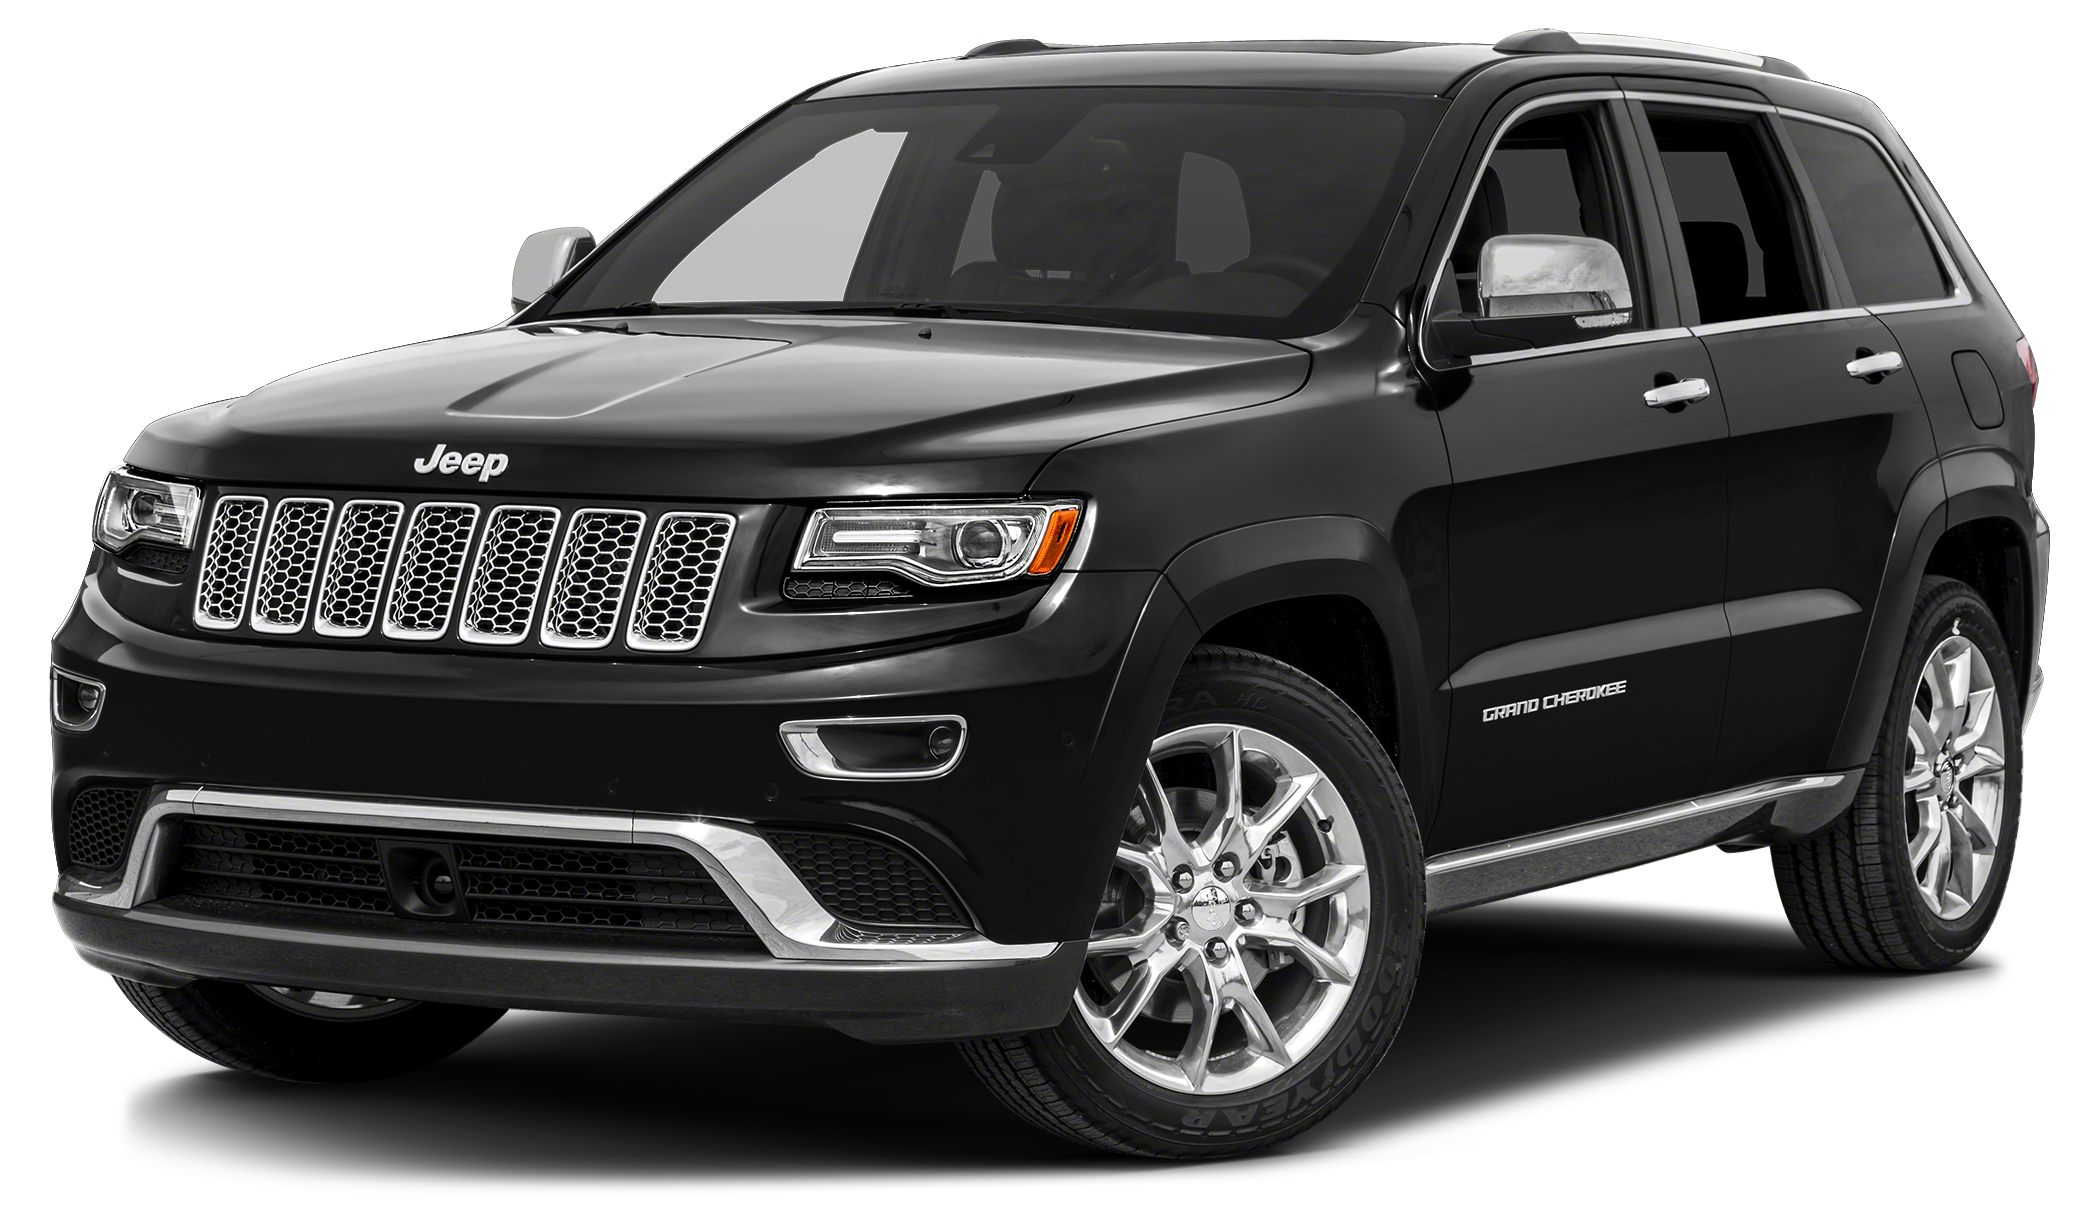 2016 Jeep Grand Cherokee Summit Miles 20Color Black Stock 7110A VIN 1C4RJFJT6GC320240